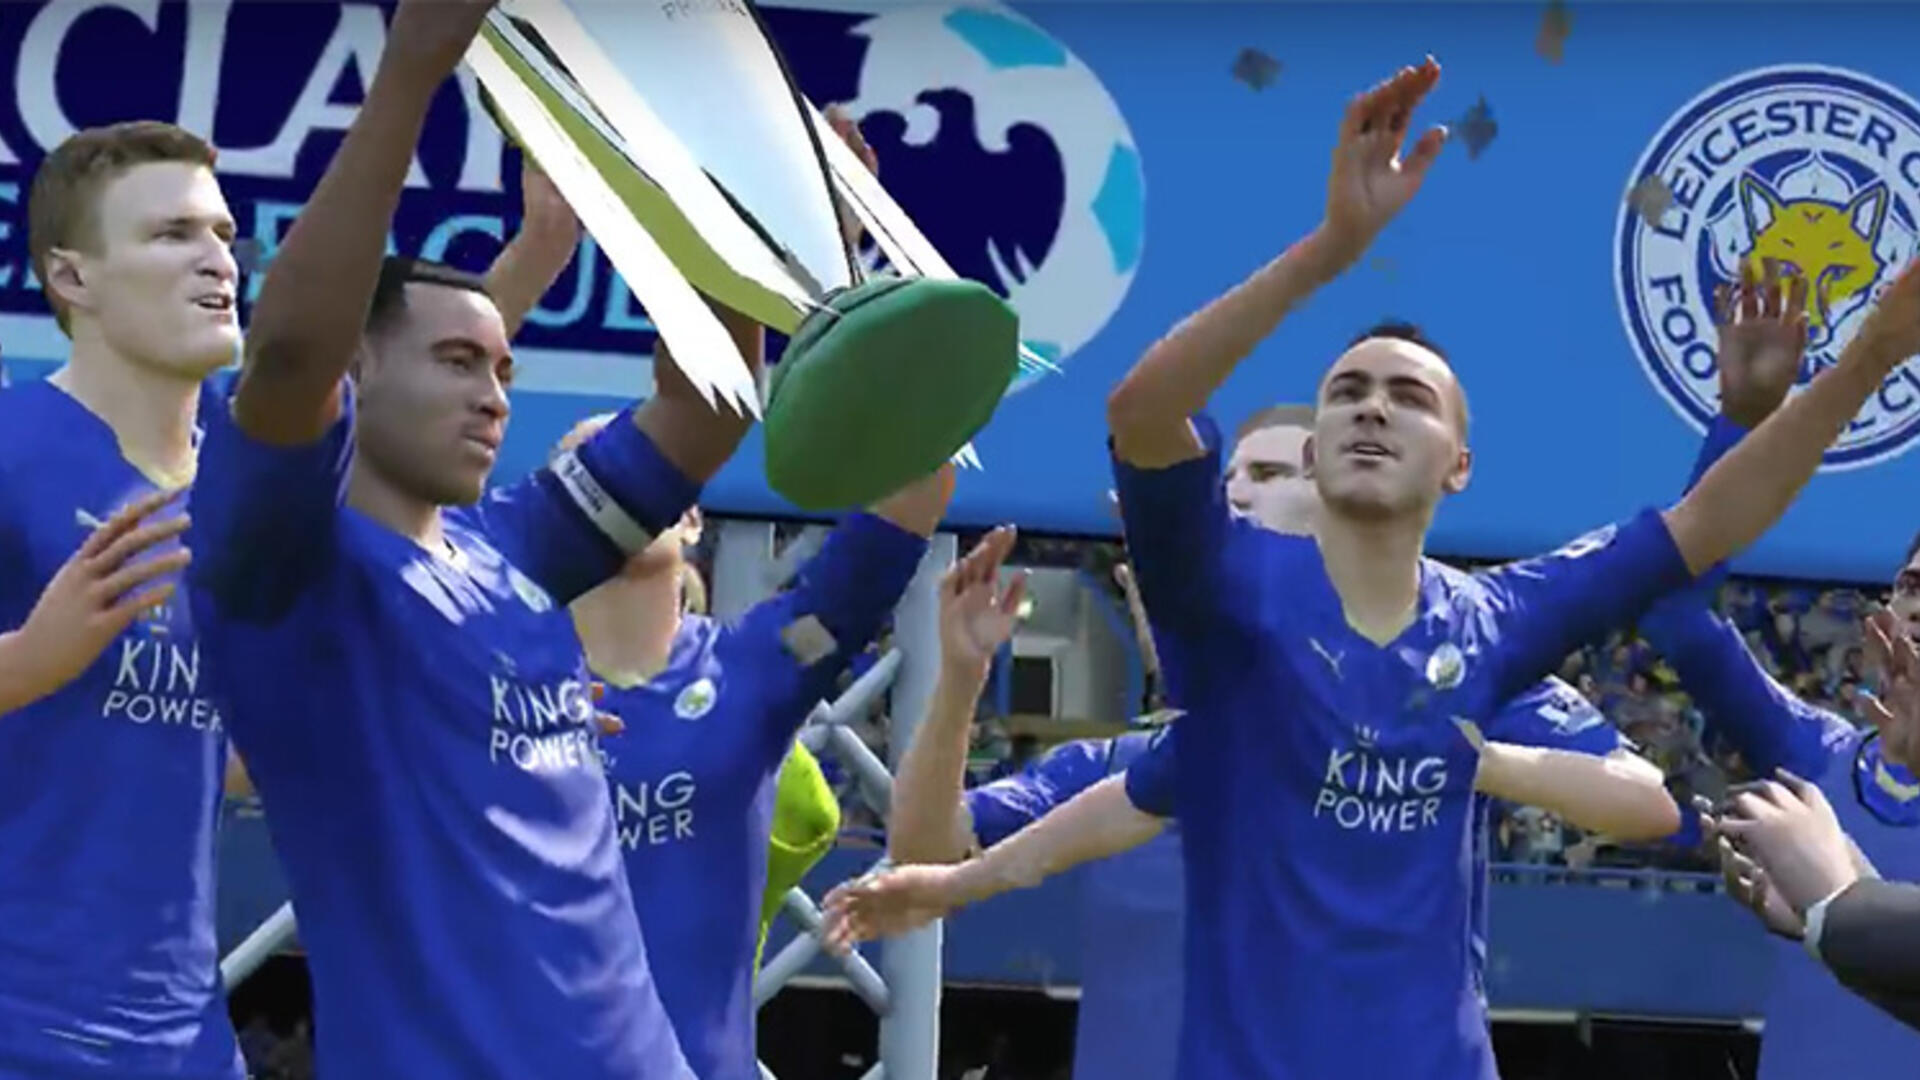 Leicester City's Championship Run is a FIFA Career Mode Come to Life